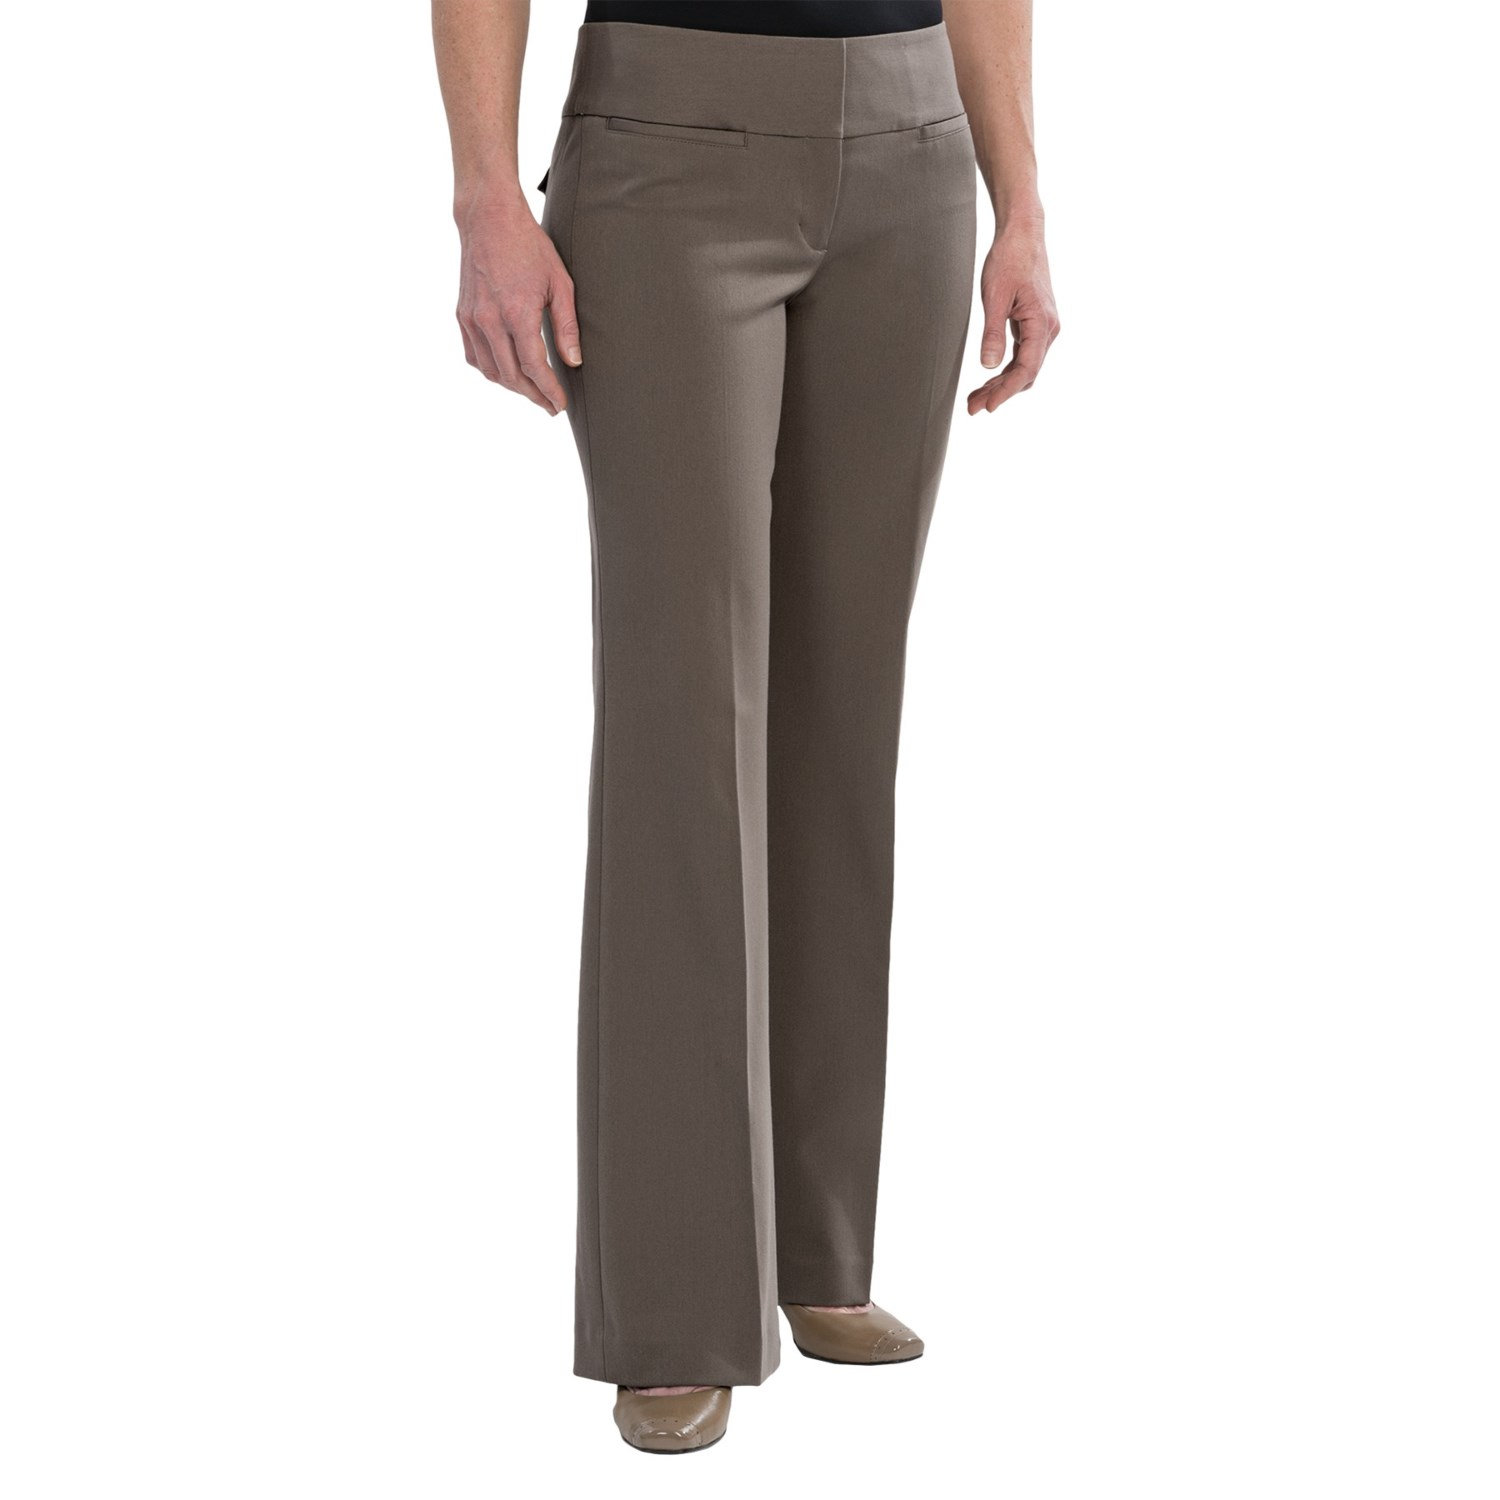 Elegant Womens Khaki Dress Pants Pi Pants  800x800  Jpeg